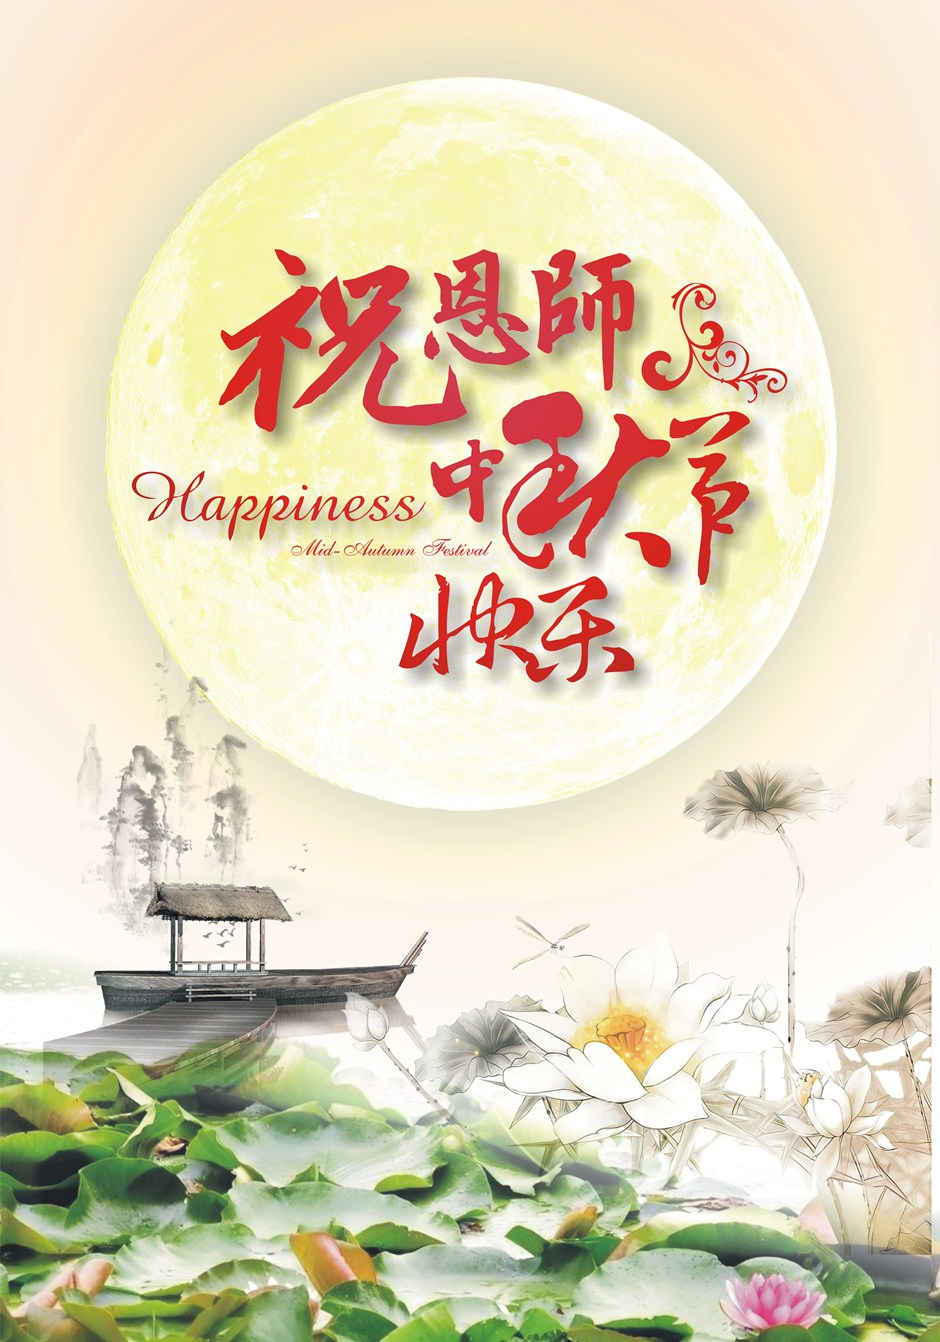 Falun dafa practitioners in china respectfully wish master a happy practitioners in hangzhou jiangsu province respectfully wish revered master a happy mid autumn festival kristyandbryce Choice Image